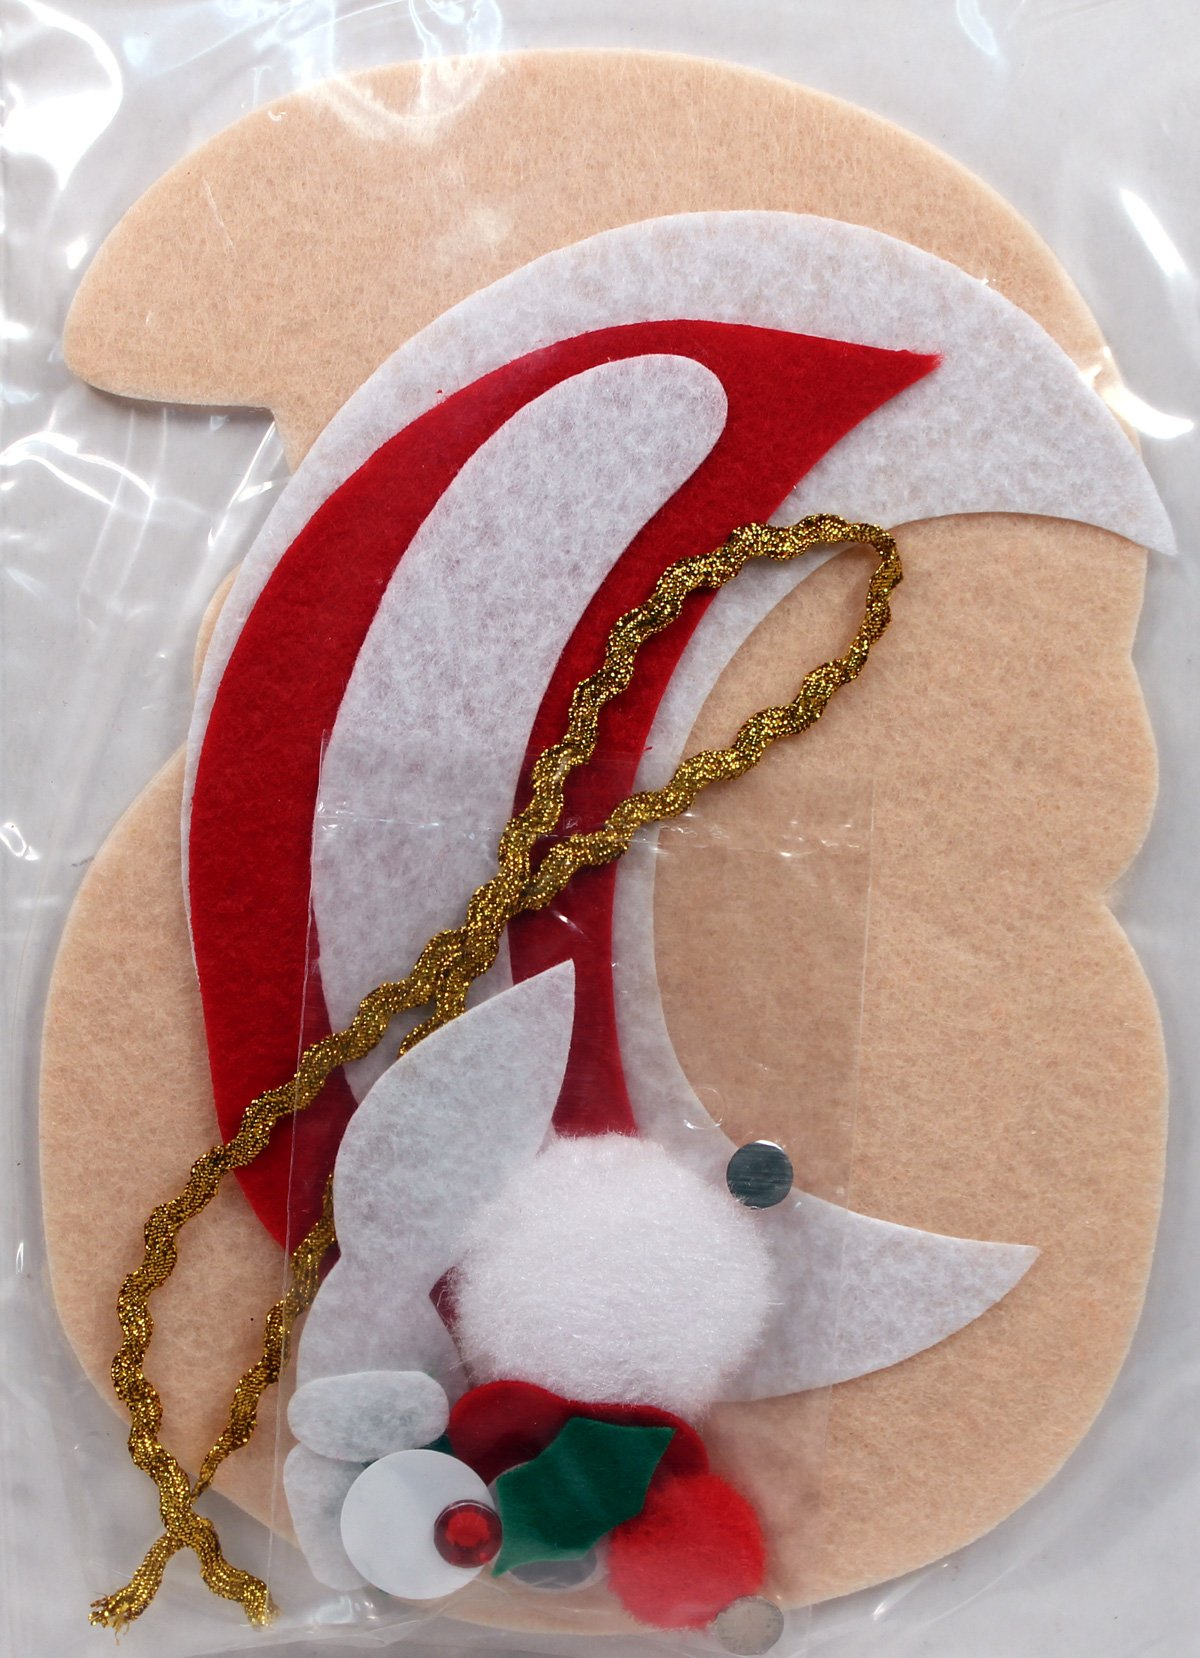 Make Your Own Felt Christmas Ornament Kit, Santa, Wholesale Pack of 12 Kits